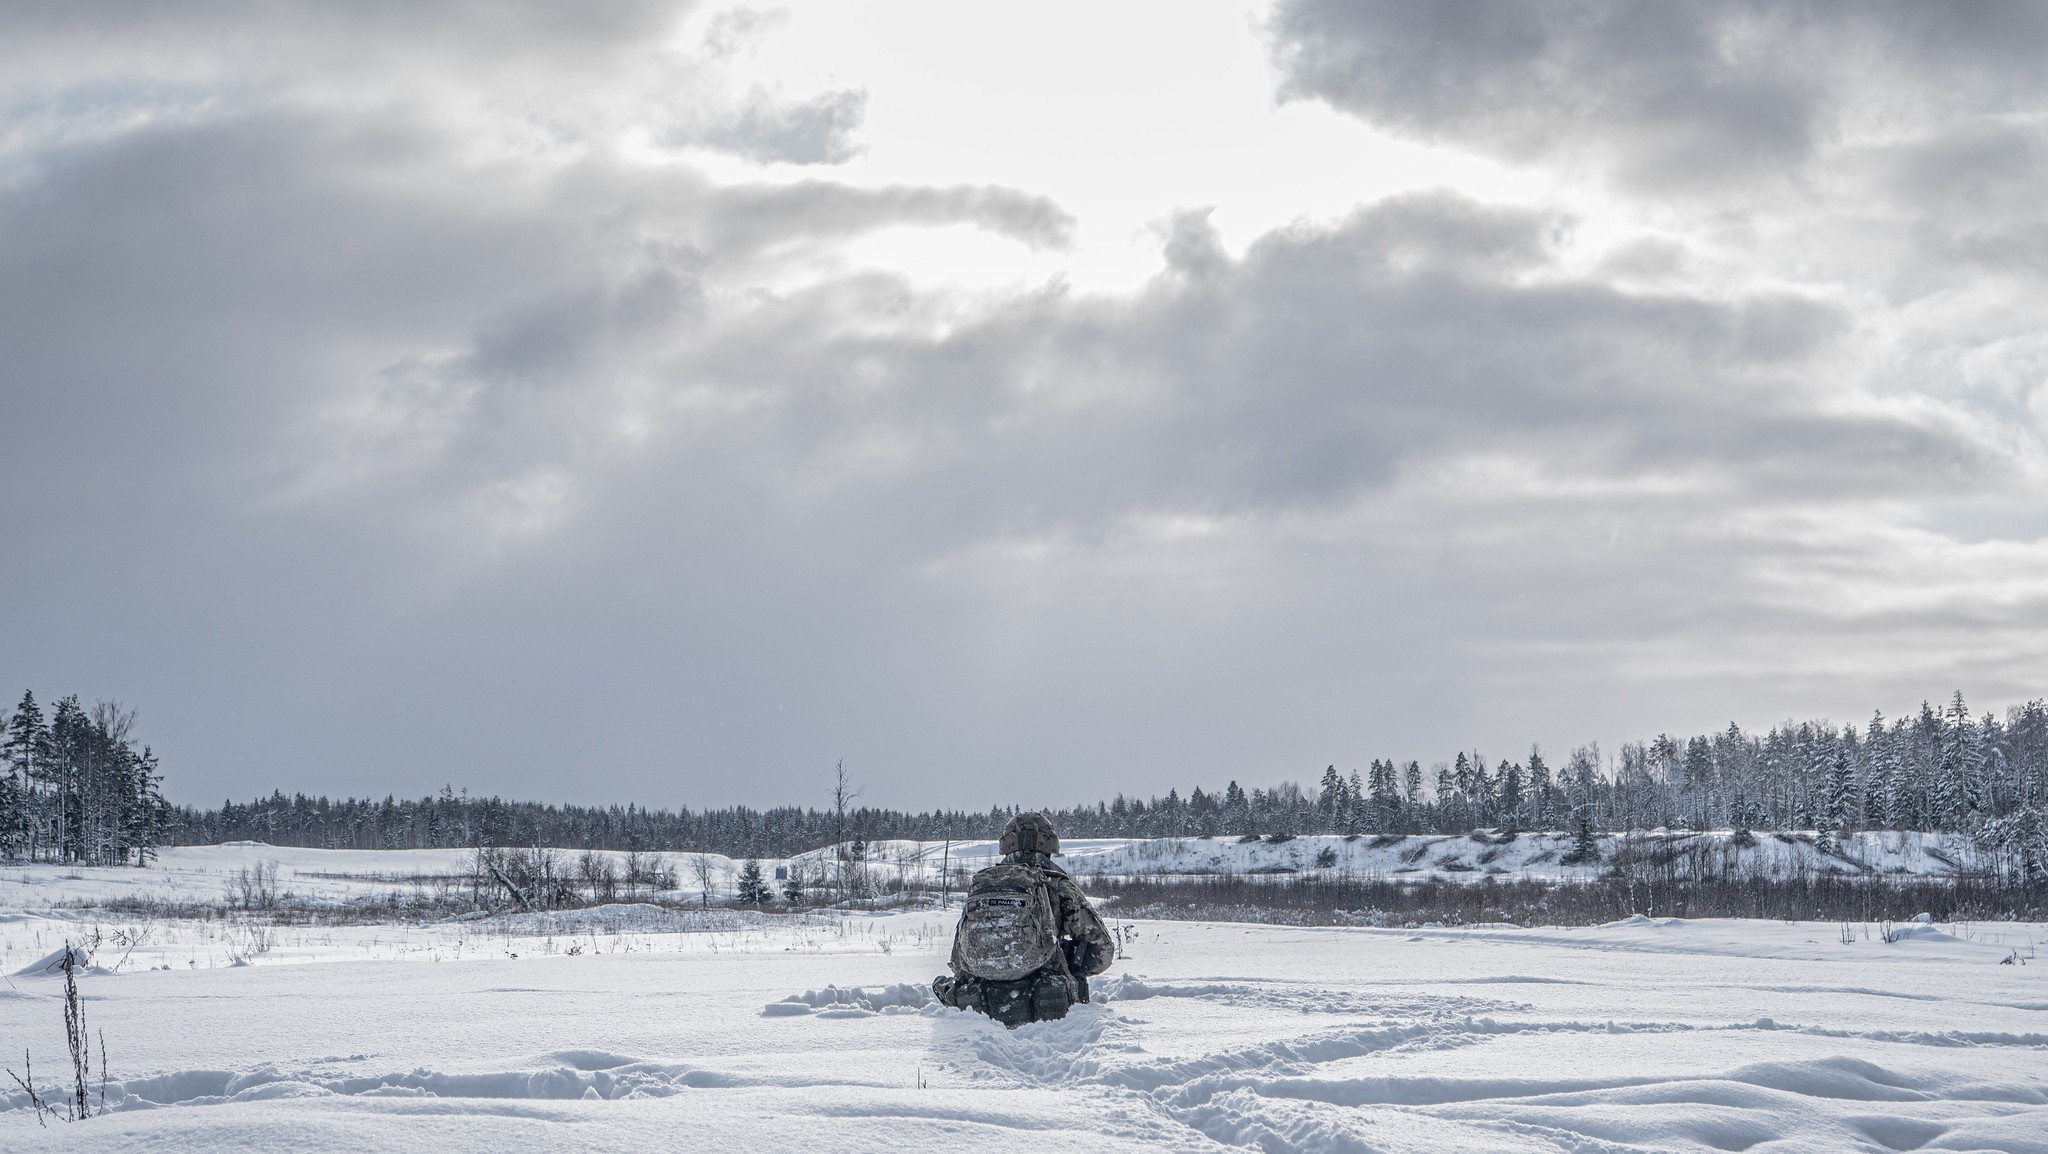 Photo: British soldier waits in the snow during cold weather training exercise in Estonia. Credit: NATO